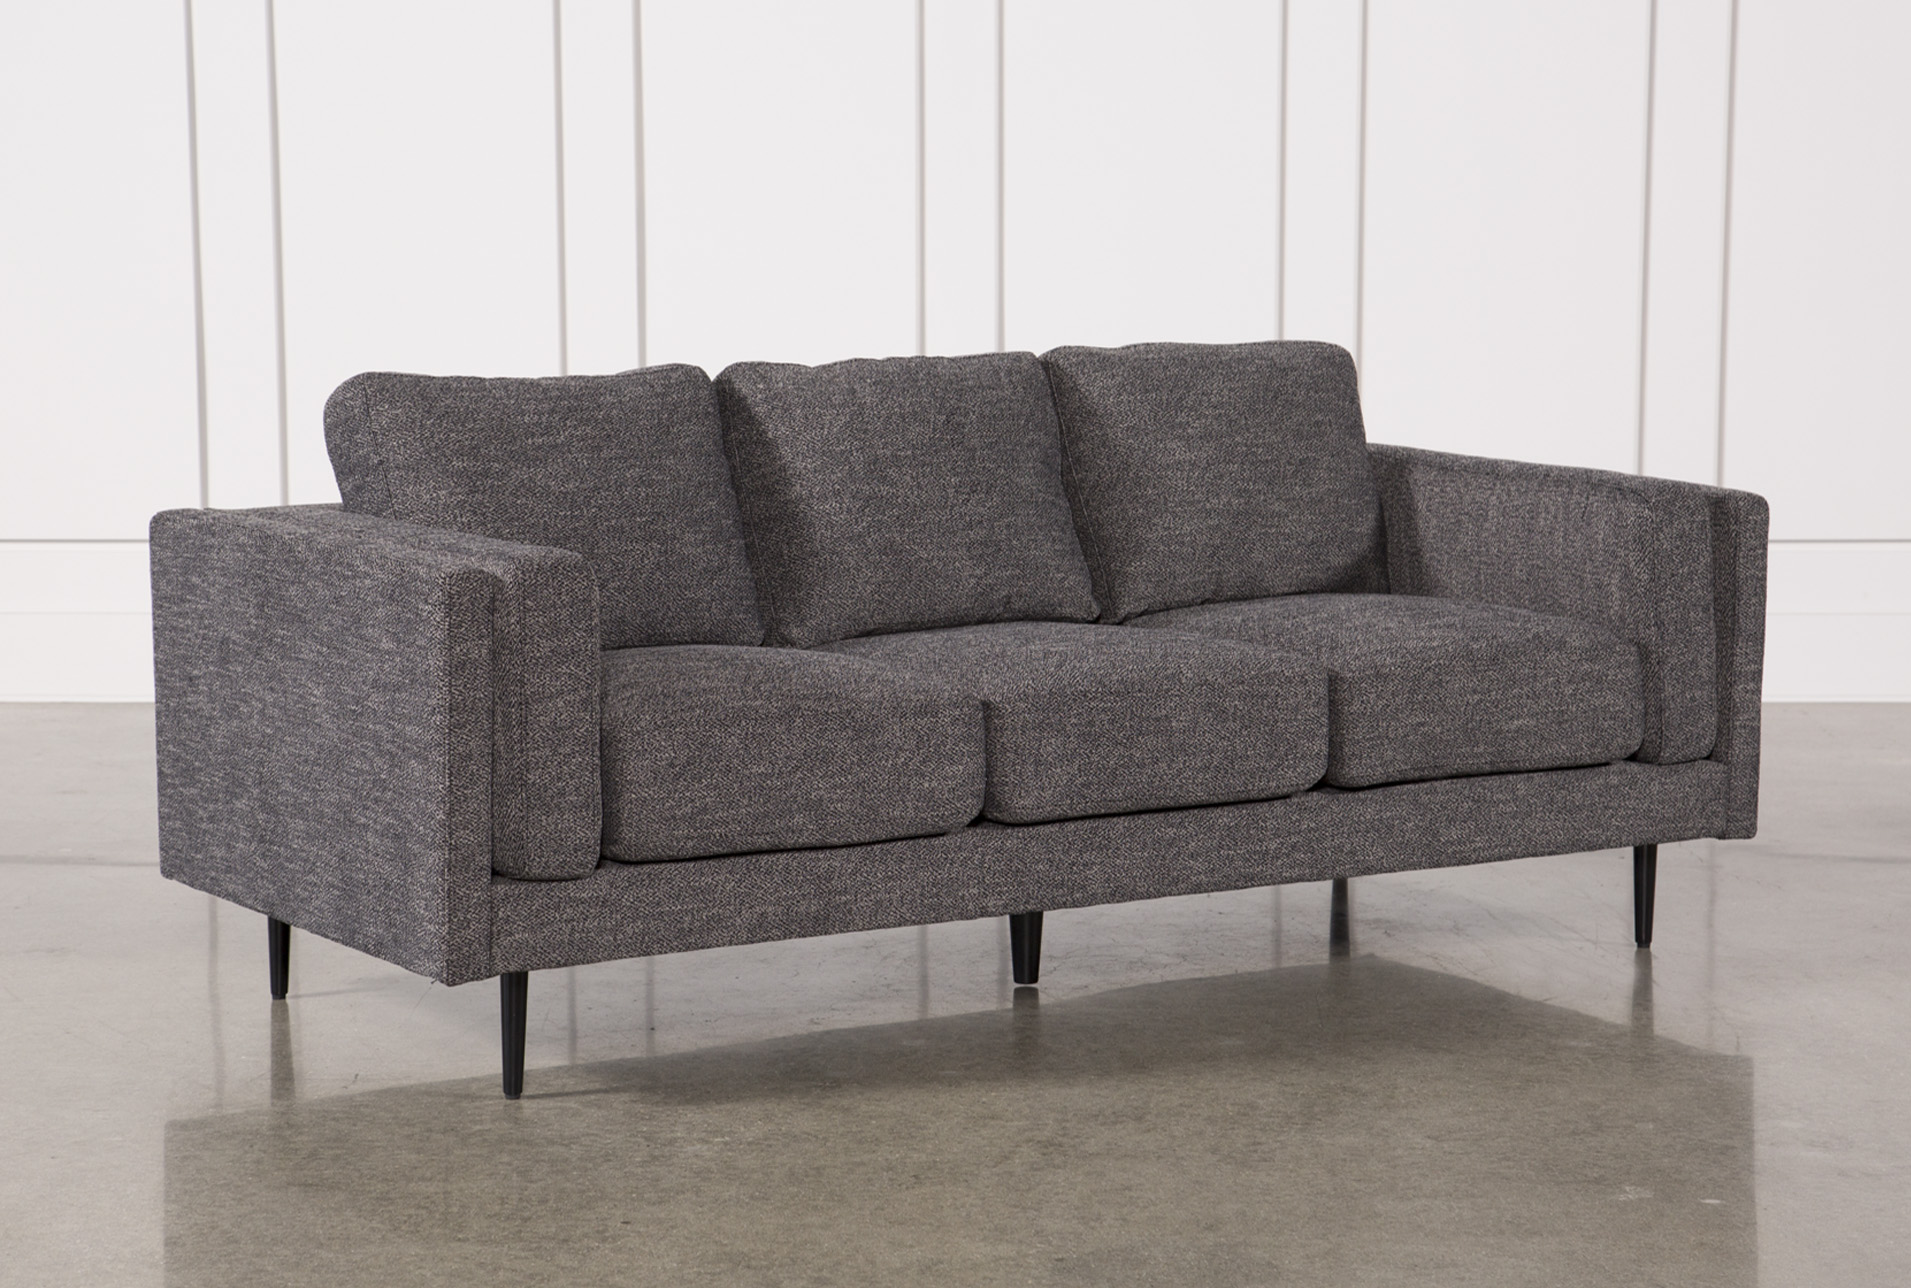 Classic modern outdoor furniture design ideas grace Round Aquarius Dark Grey Sofa Living Spaces Living Room Furniture To Fit Your Home Decor Living Spaces